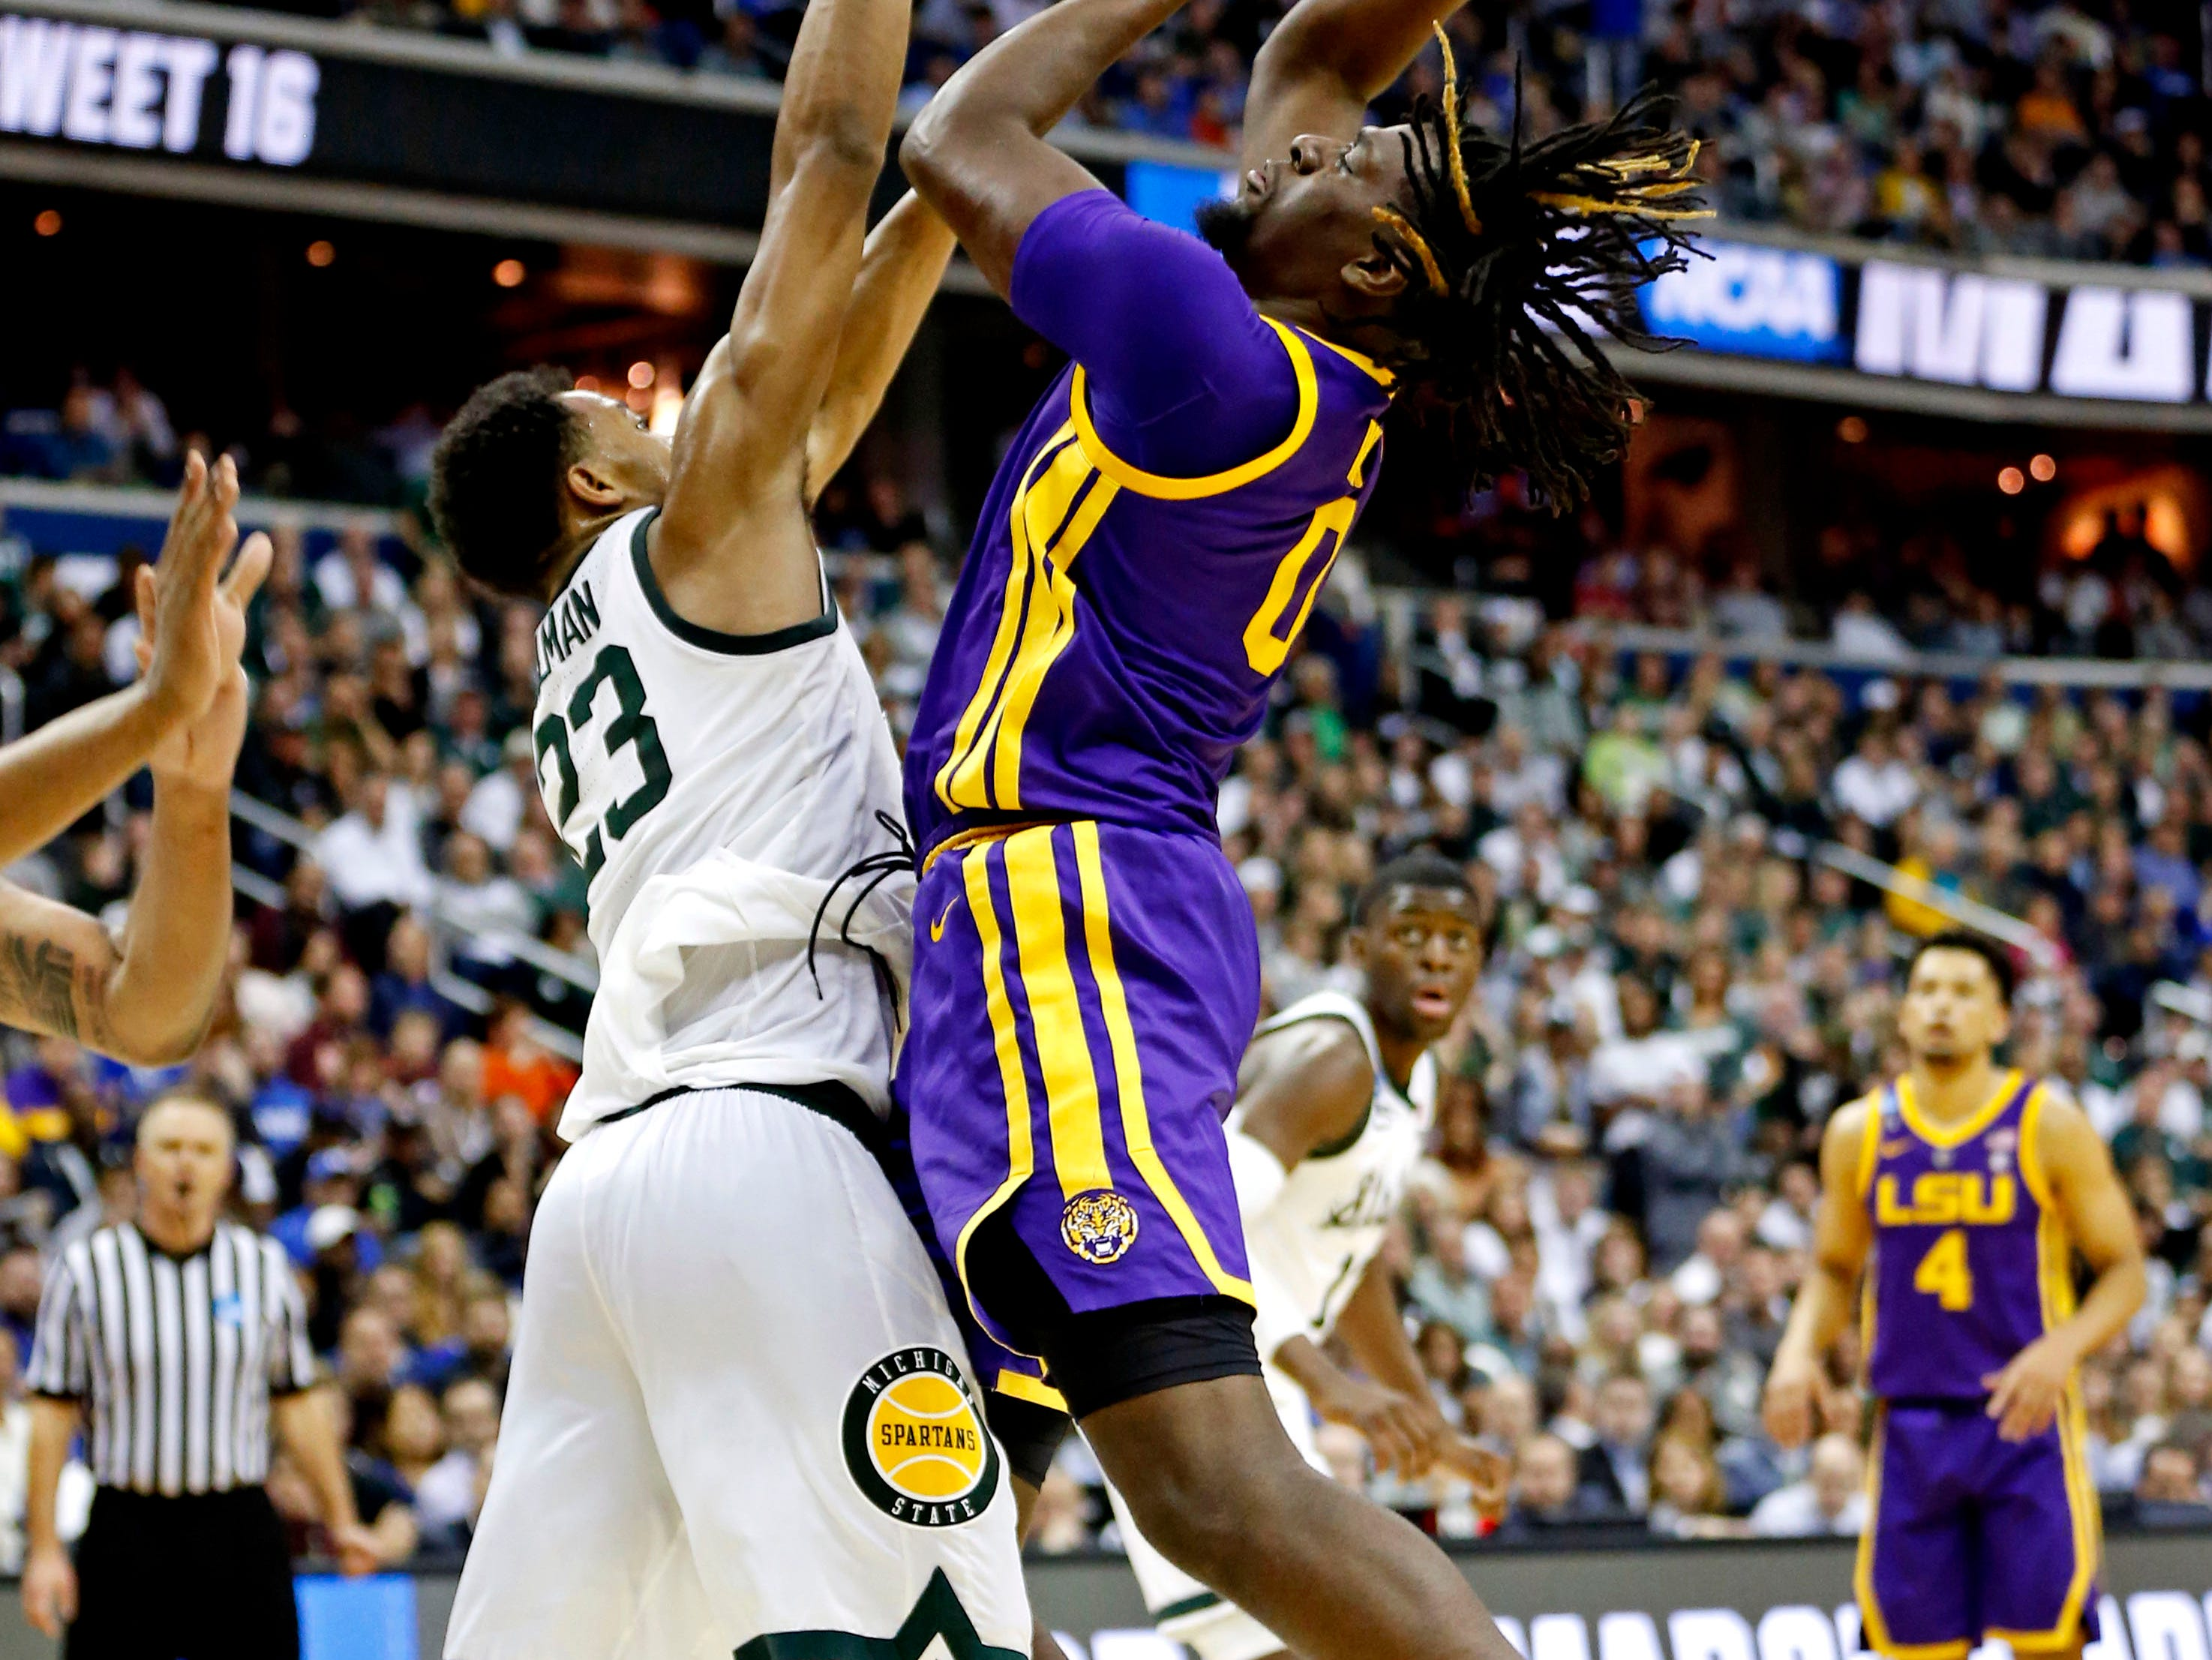 Mar 29, 2019; Washington, DC, USA; LSU Tigers forward Naz Reid (0) shoots the ball against Michigan State Spartans forward Xavier Tillman (23) during the second half in the semifinals of the east regional of the 2019 NCAA Tournament at Capital One Arena. Mandatory Credit: Amber Searls-USA TODAY Sports